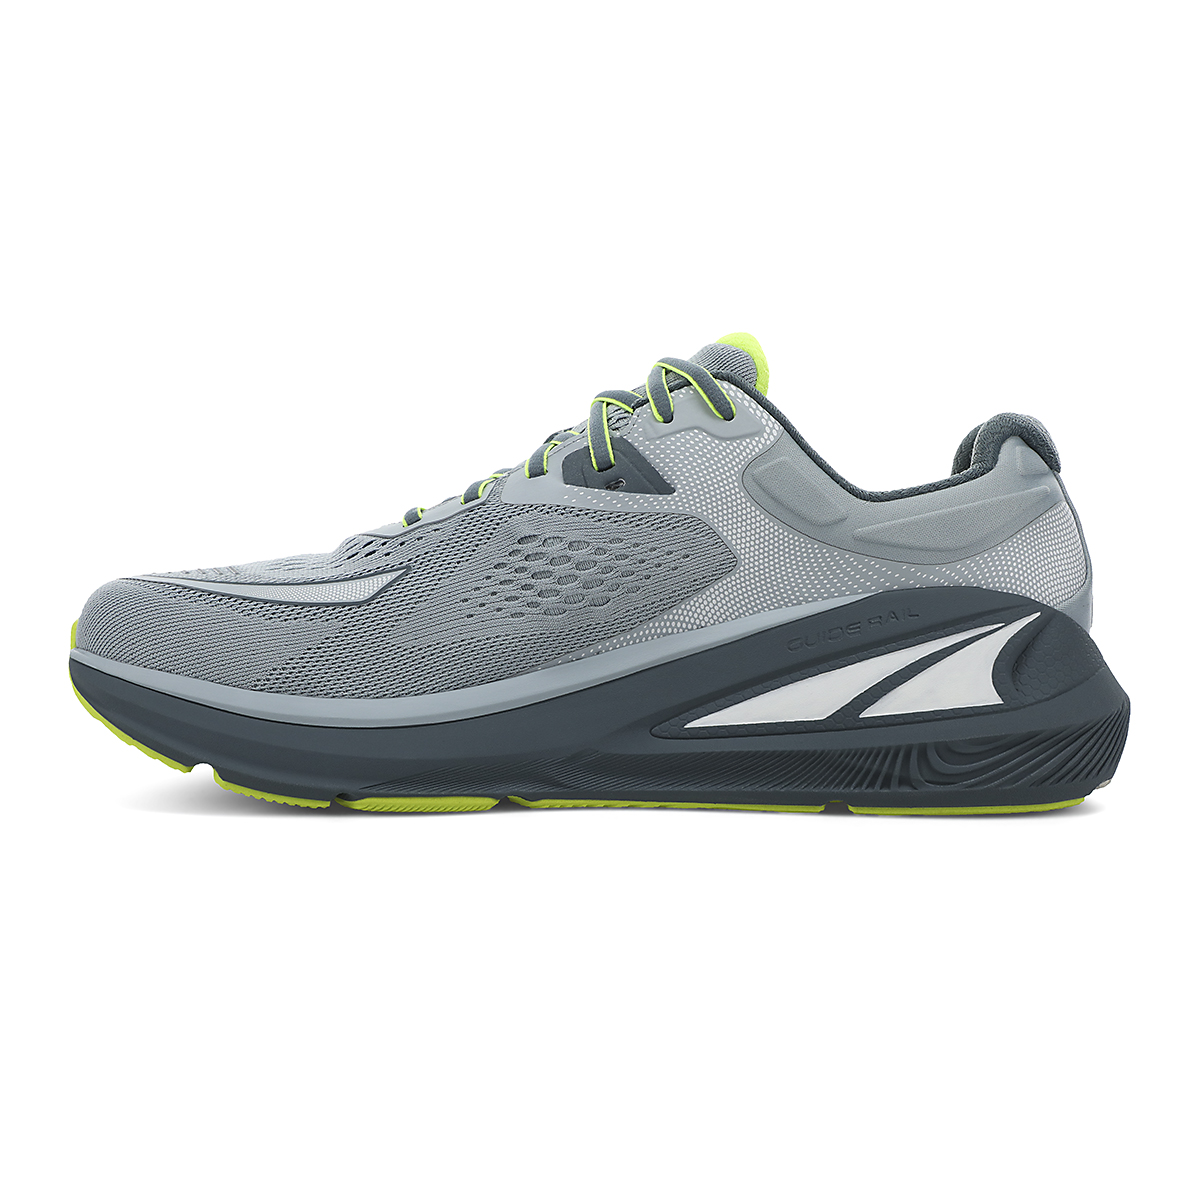 Men's Altra Paradigm 6 Running Shoe - Color: Gray/Lime - Size: 7 - Width: Regular, Gray/Lime, large, image 2